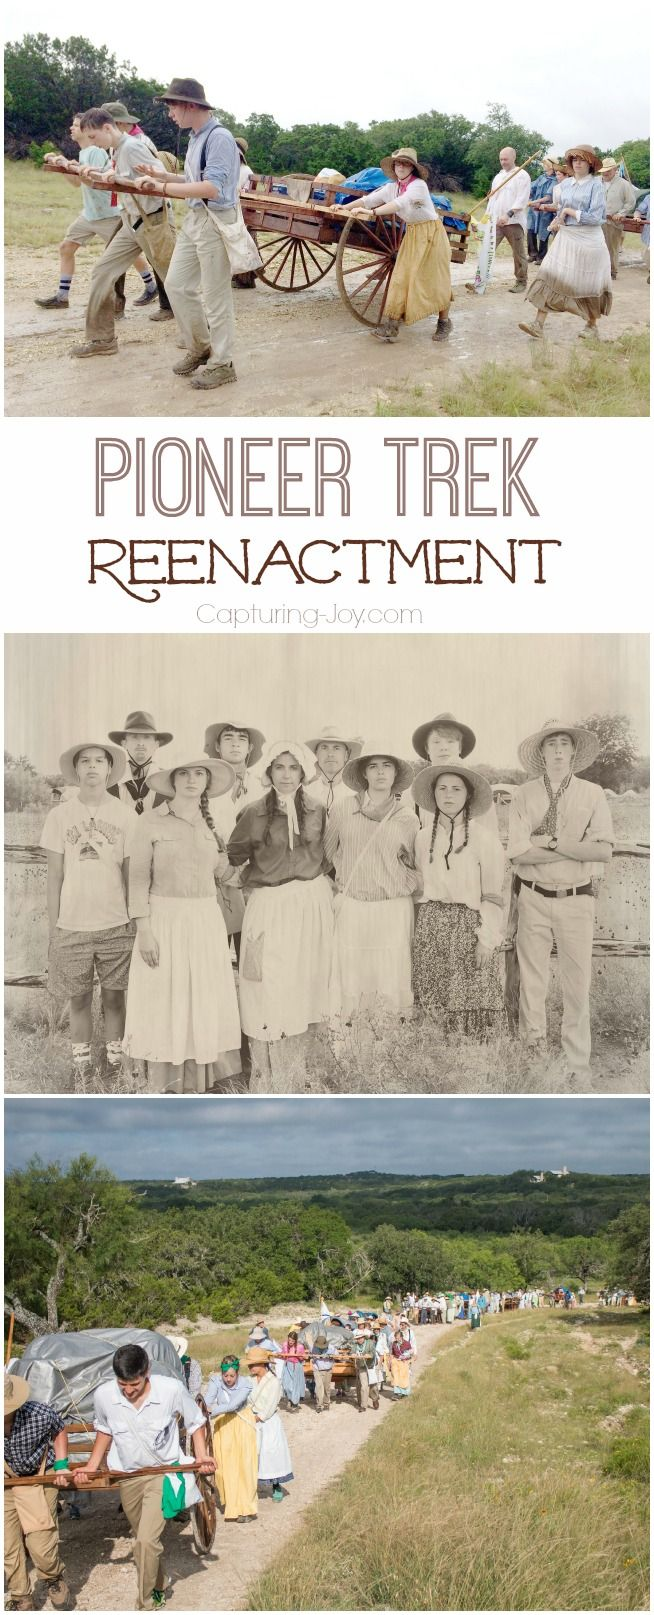 Pioneer Handcart Trek Reenactment where youth participate in a 4 day journey in the wilderness as they ponder the sacrifices of their ancestors